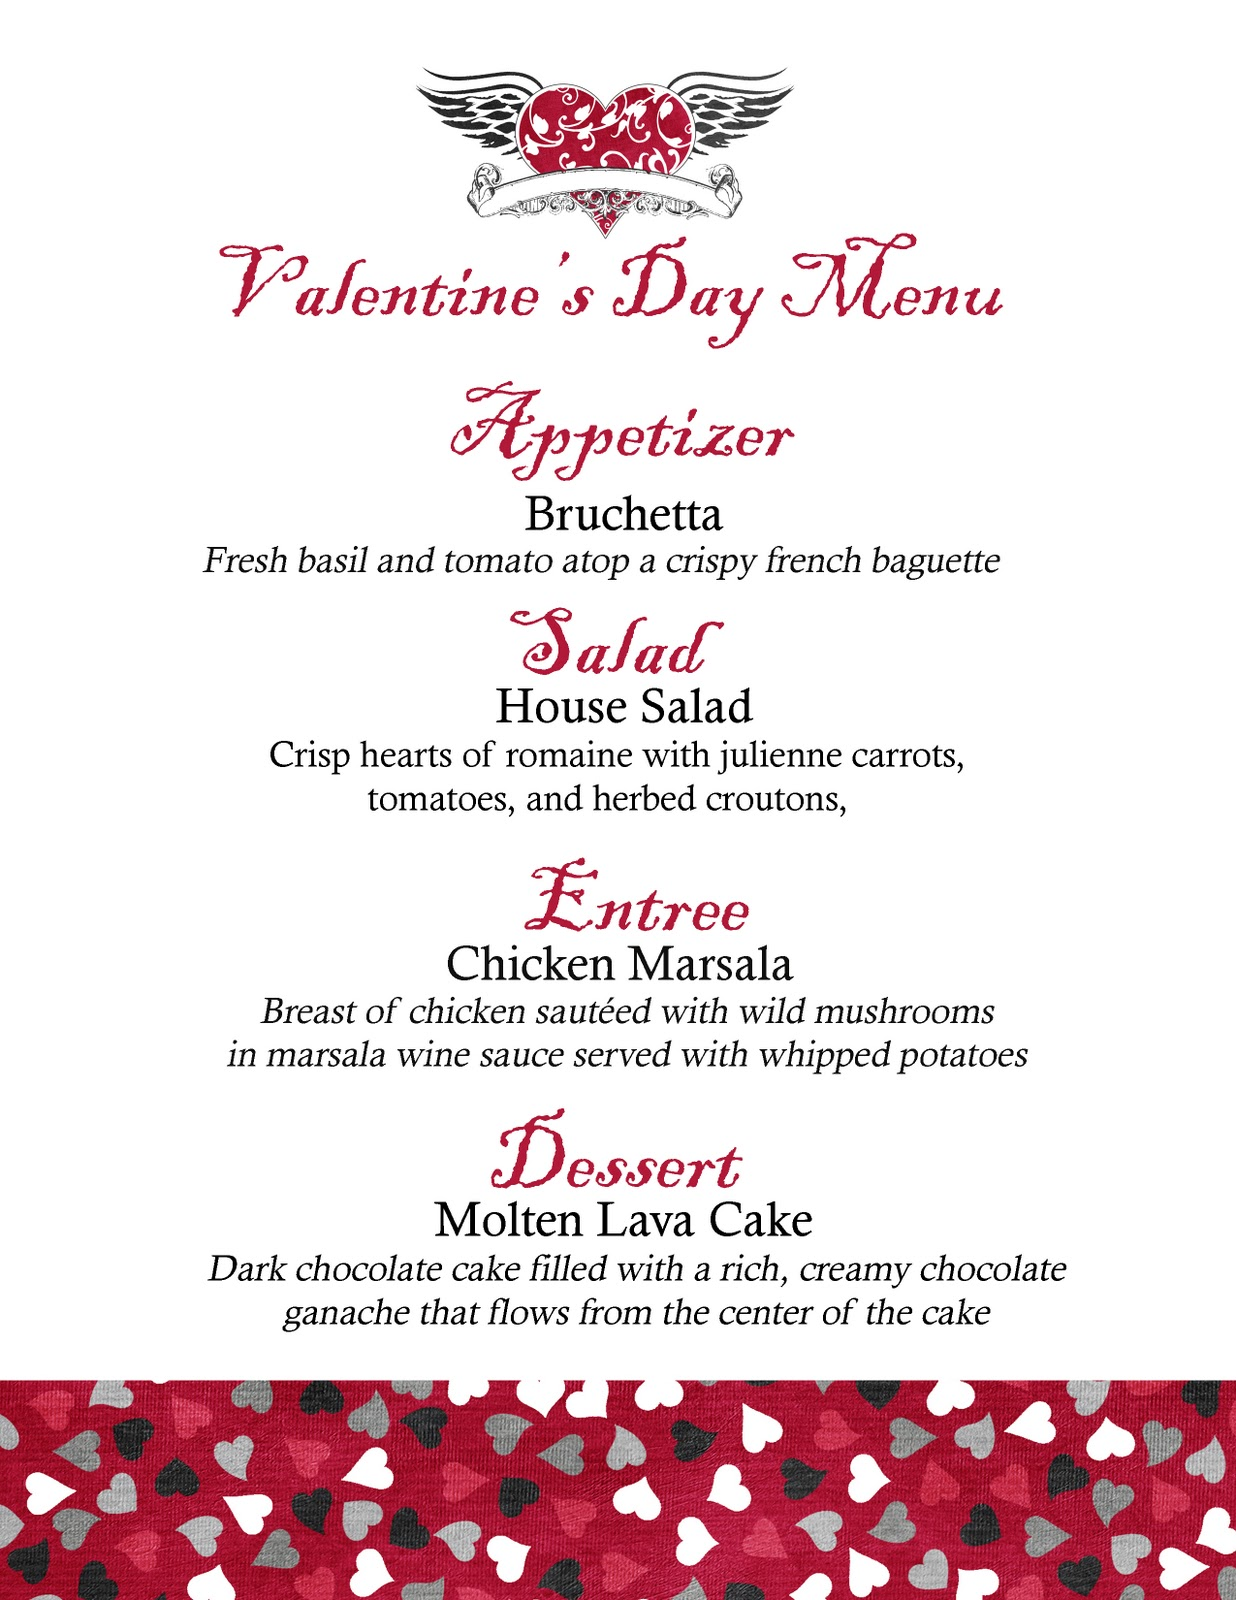 jennifer jensen  valentine u0026 39 s day menu